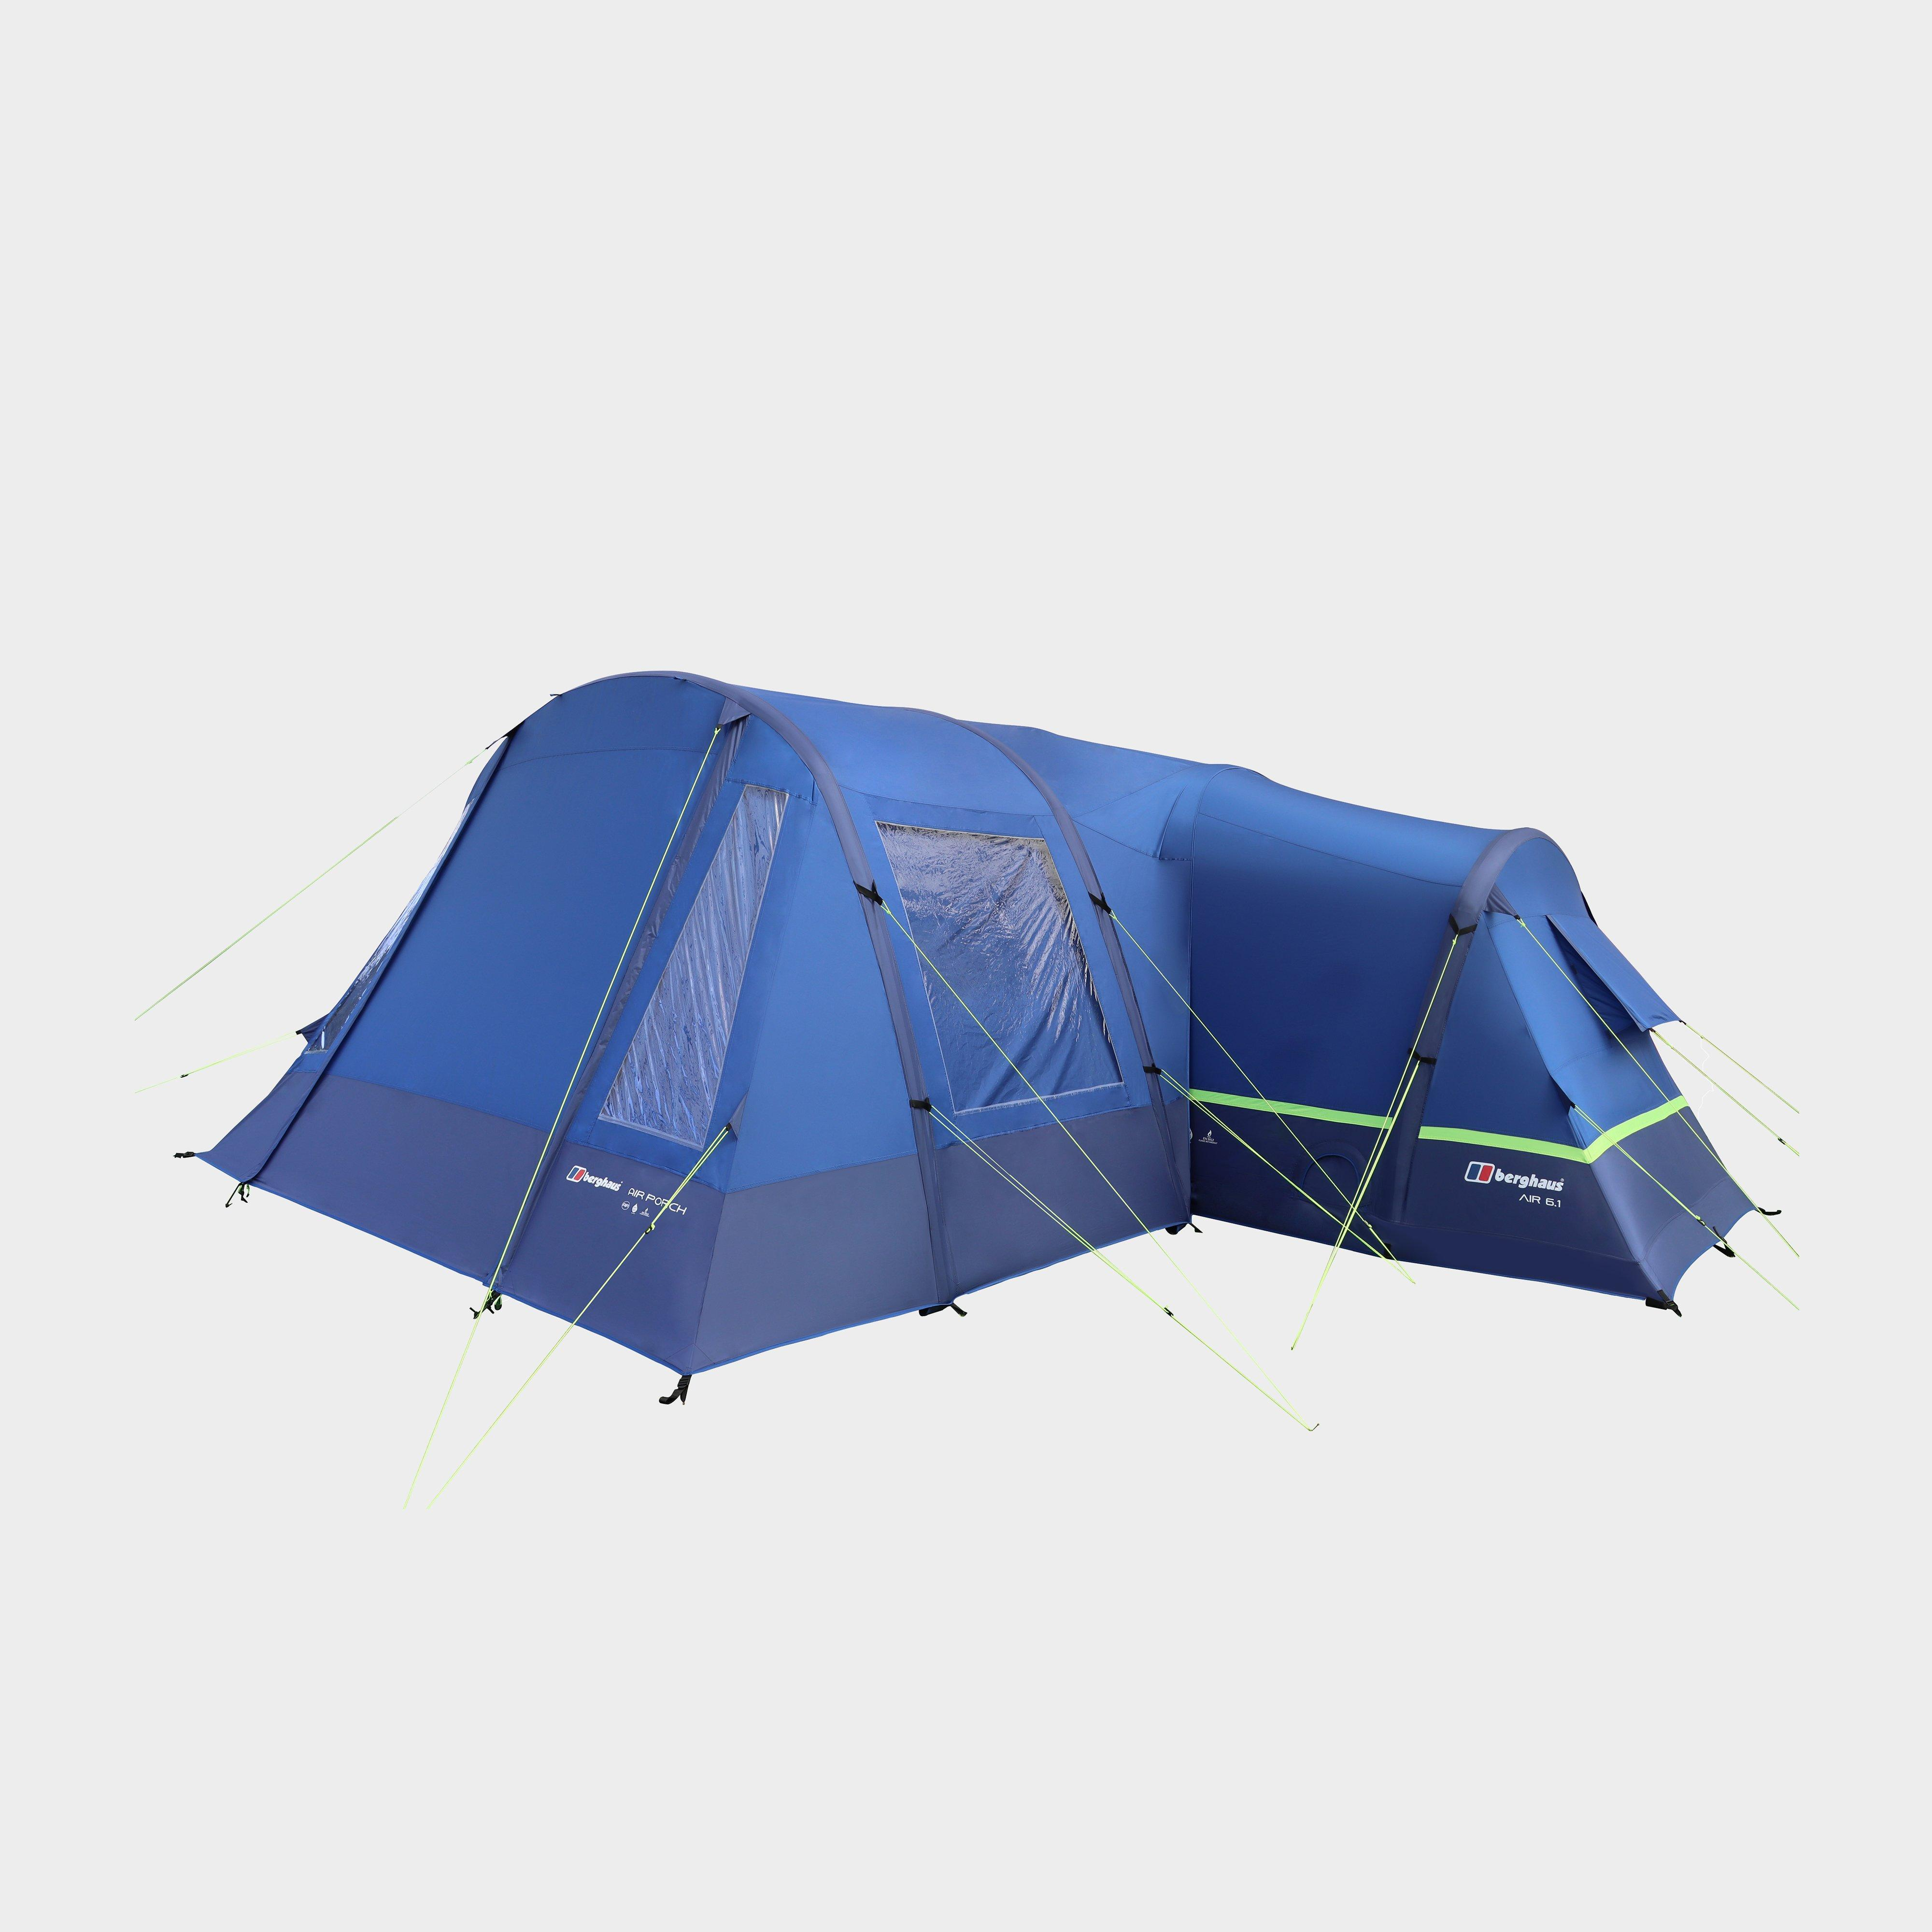 Berghaus Berghaus Air Tent Porch - Blue, Blue